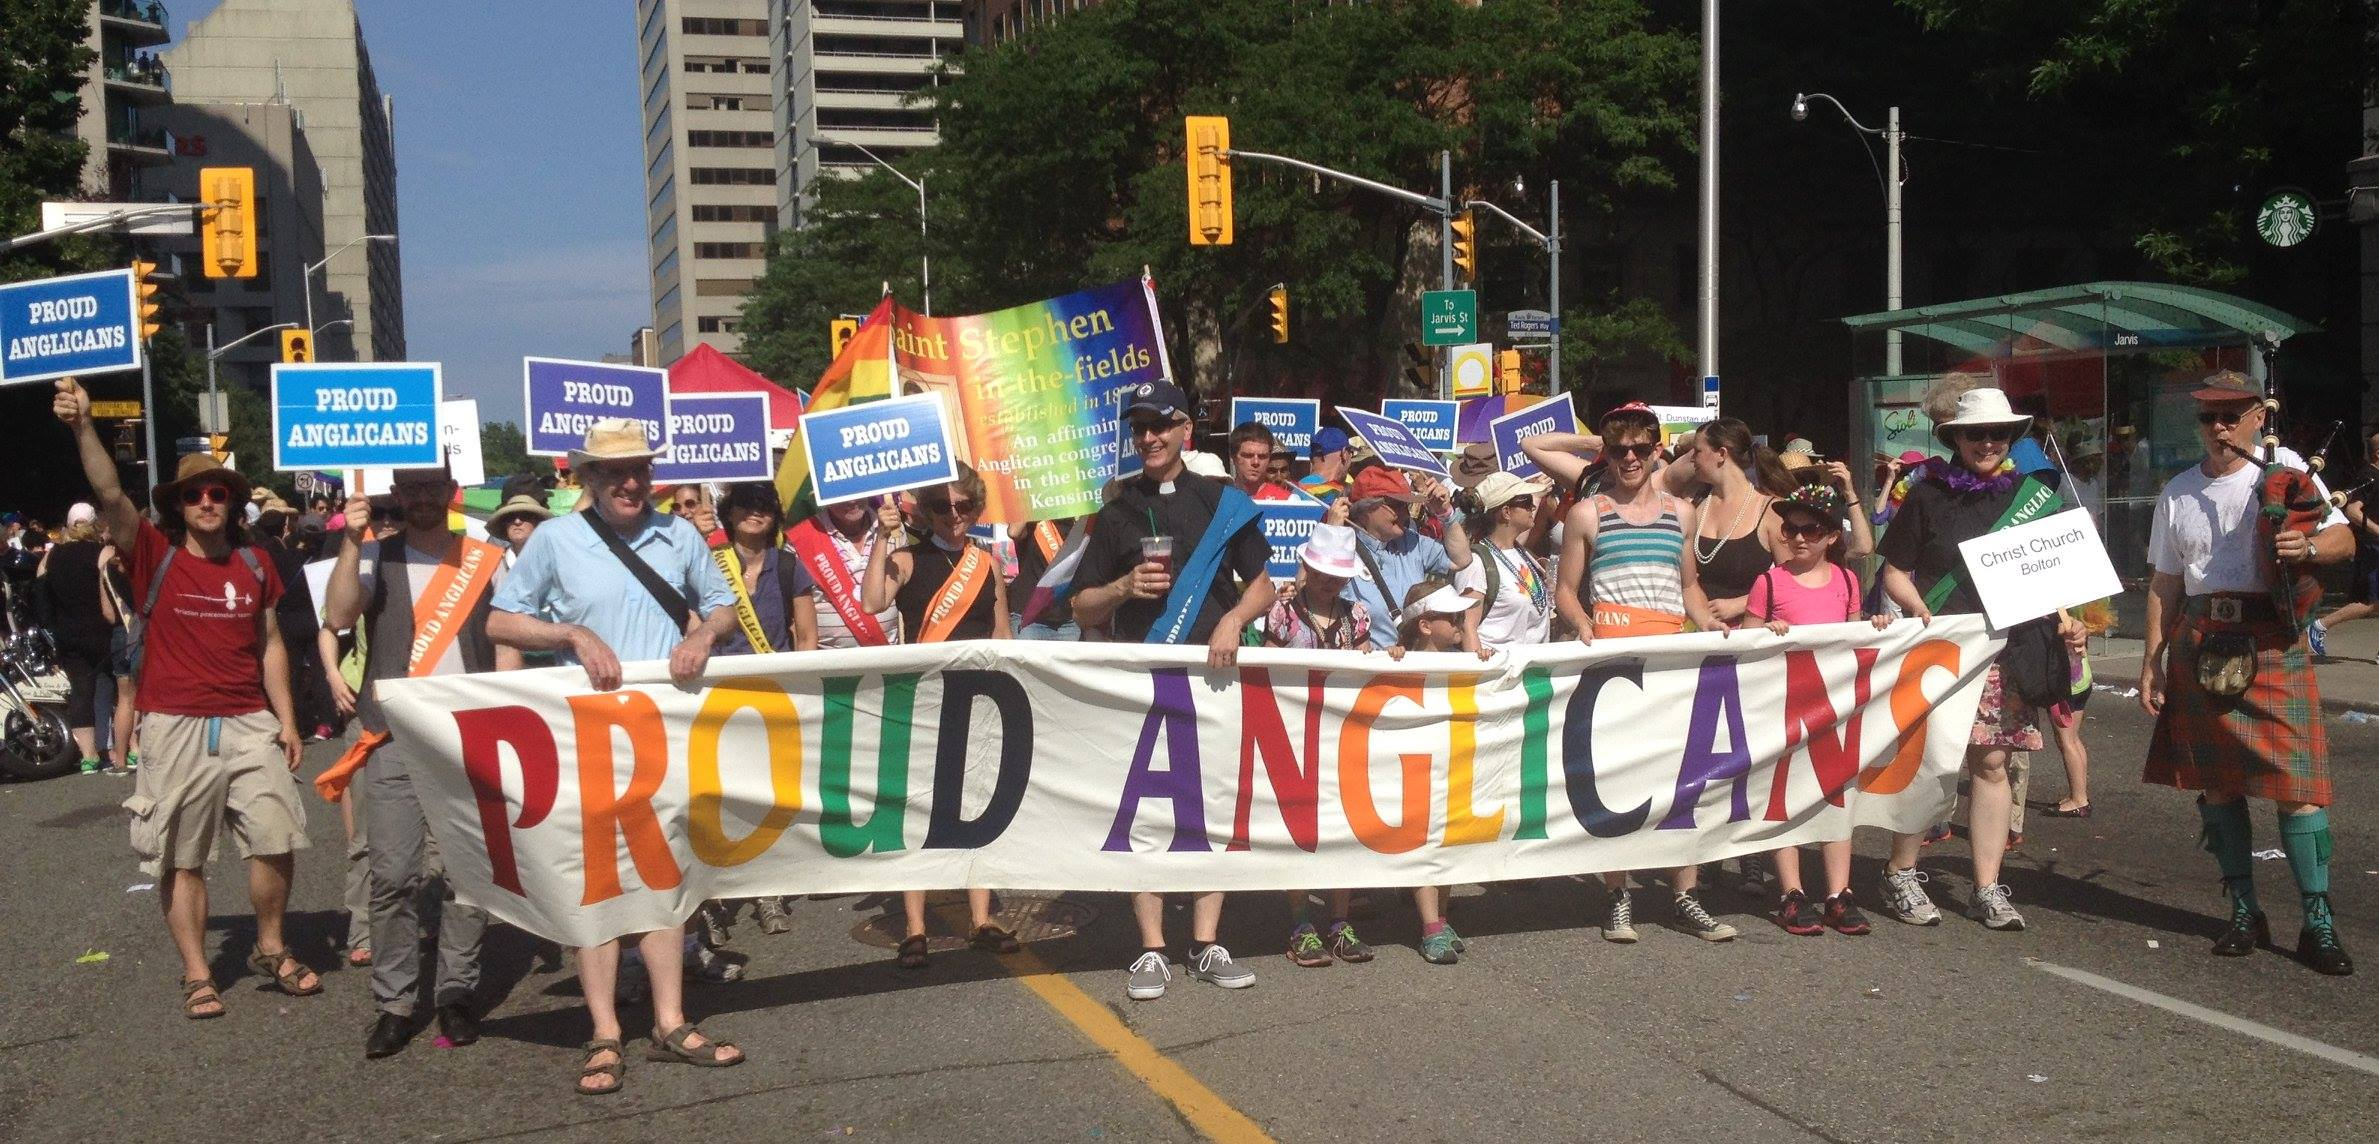 Proud Anglicans